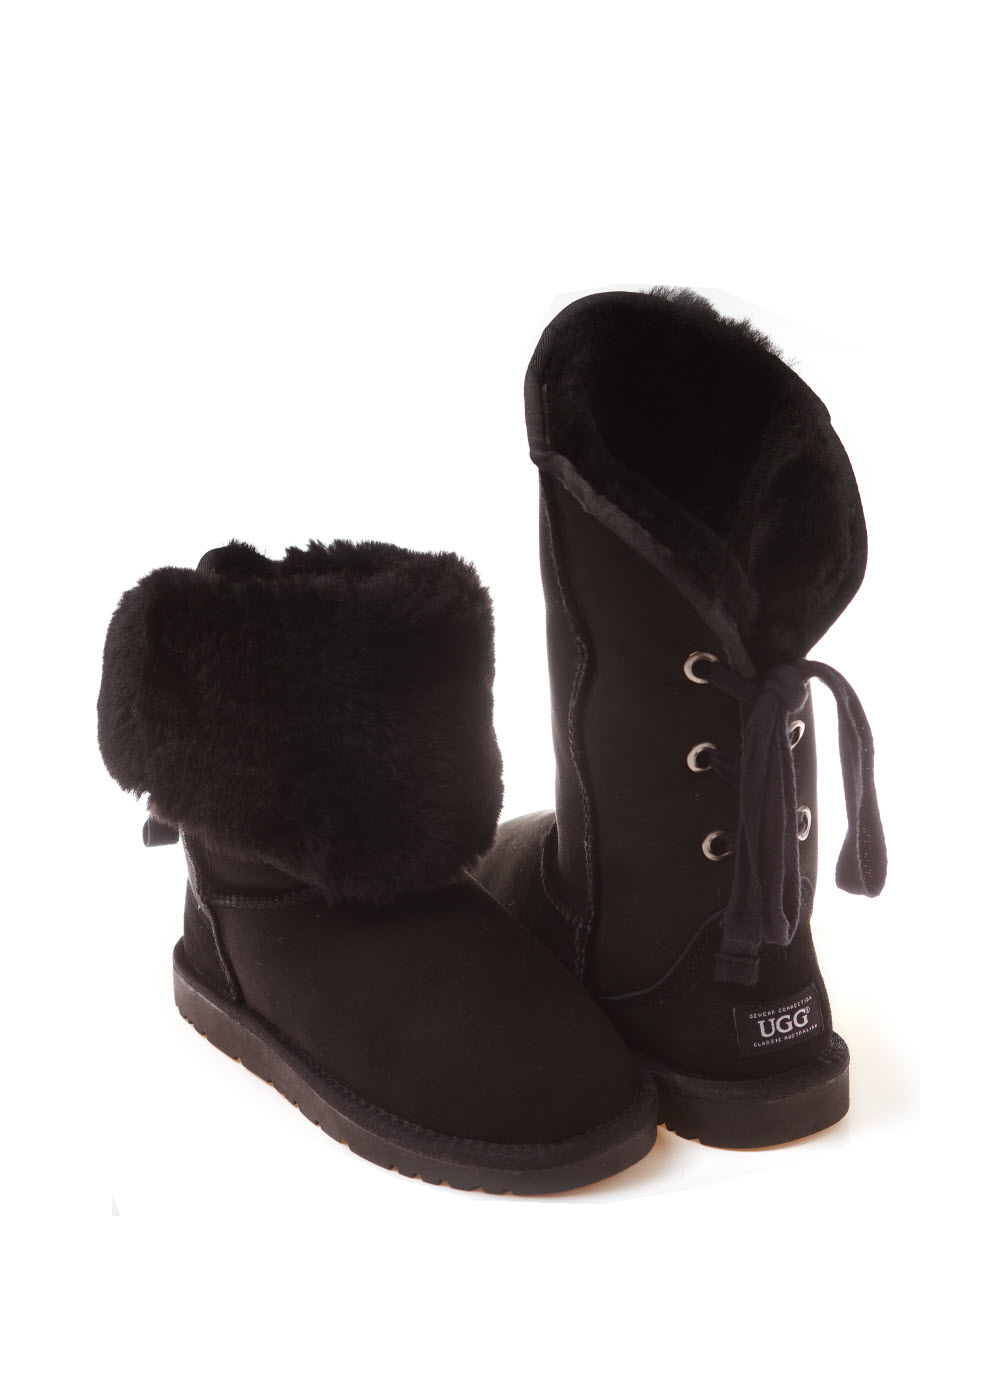 ozwear ugg boots review